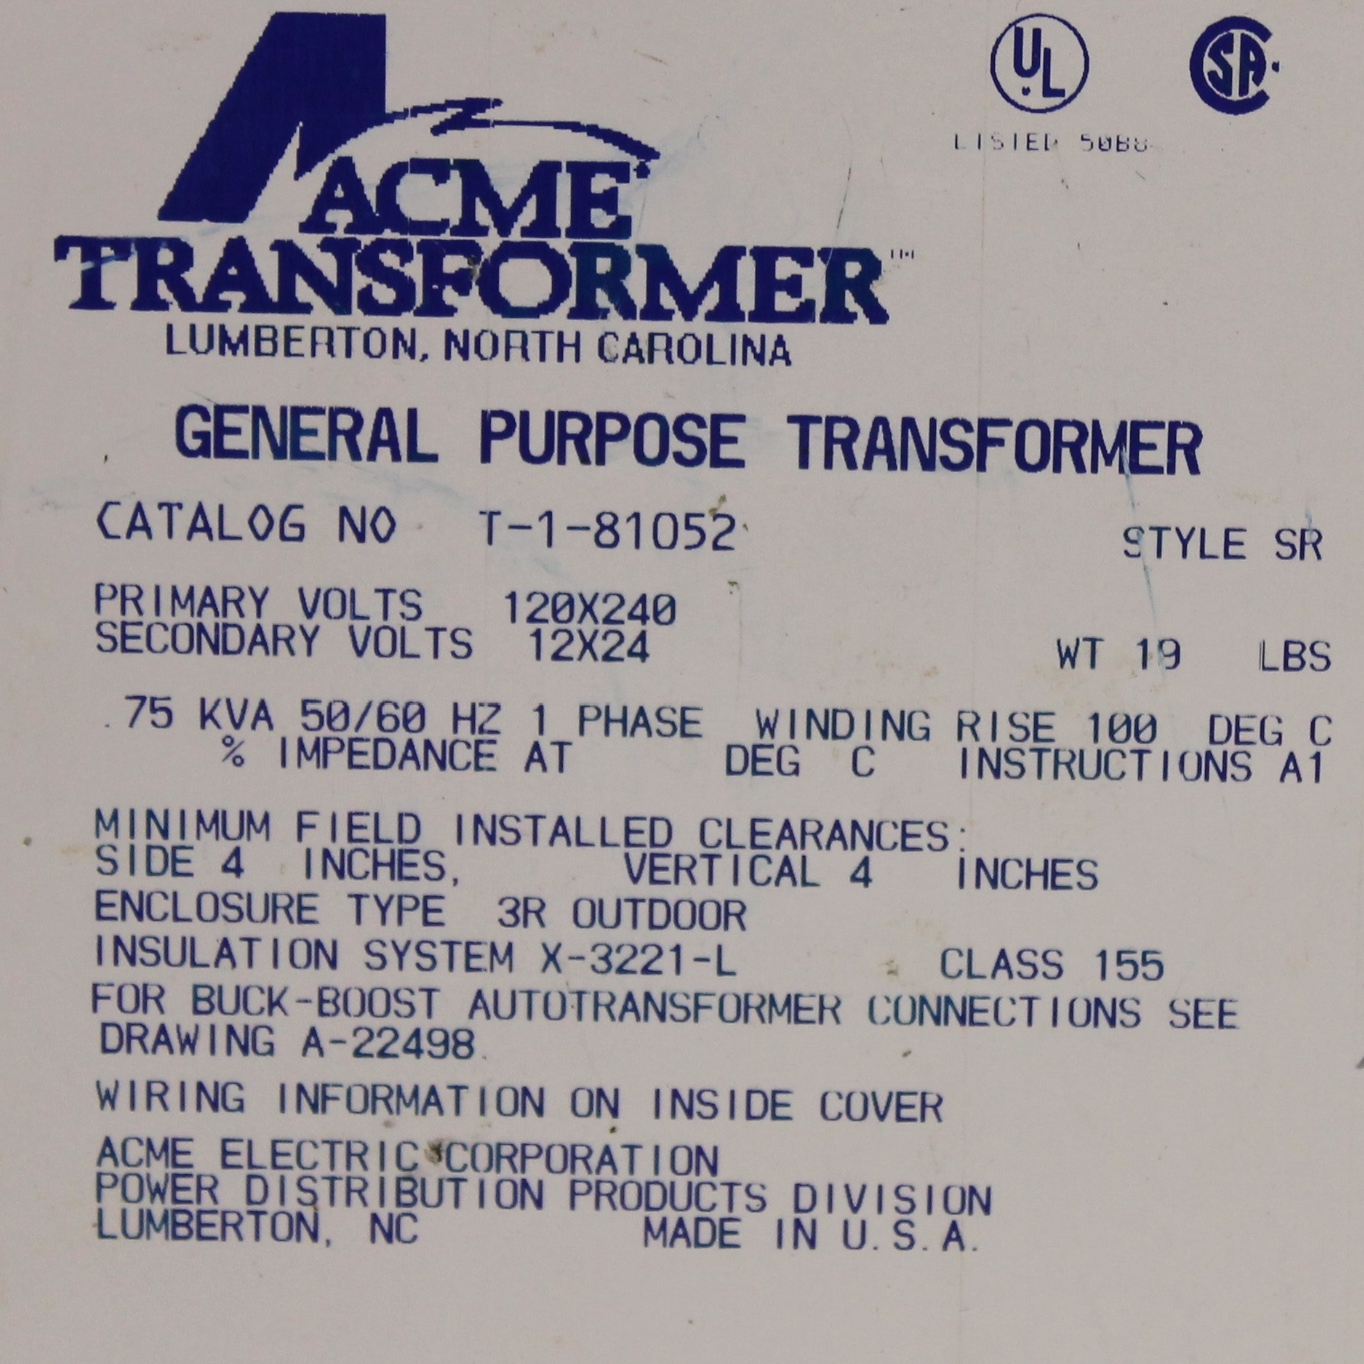 Acme T-1-81052 Buck-Boost Transformer Image